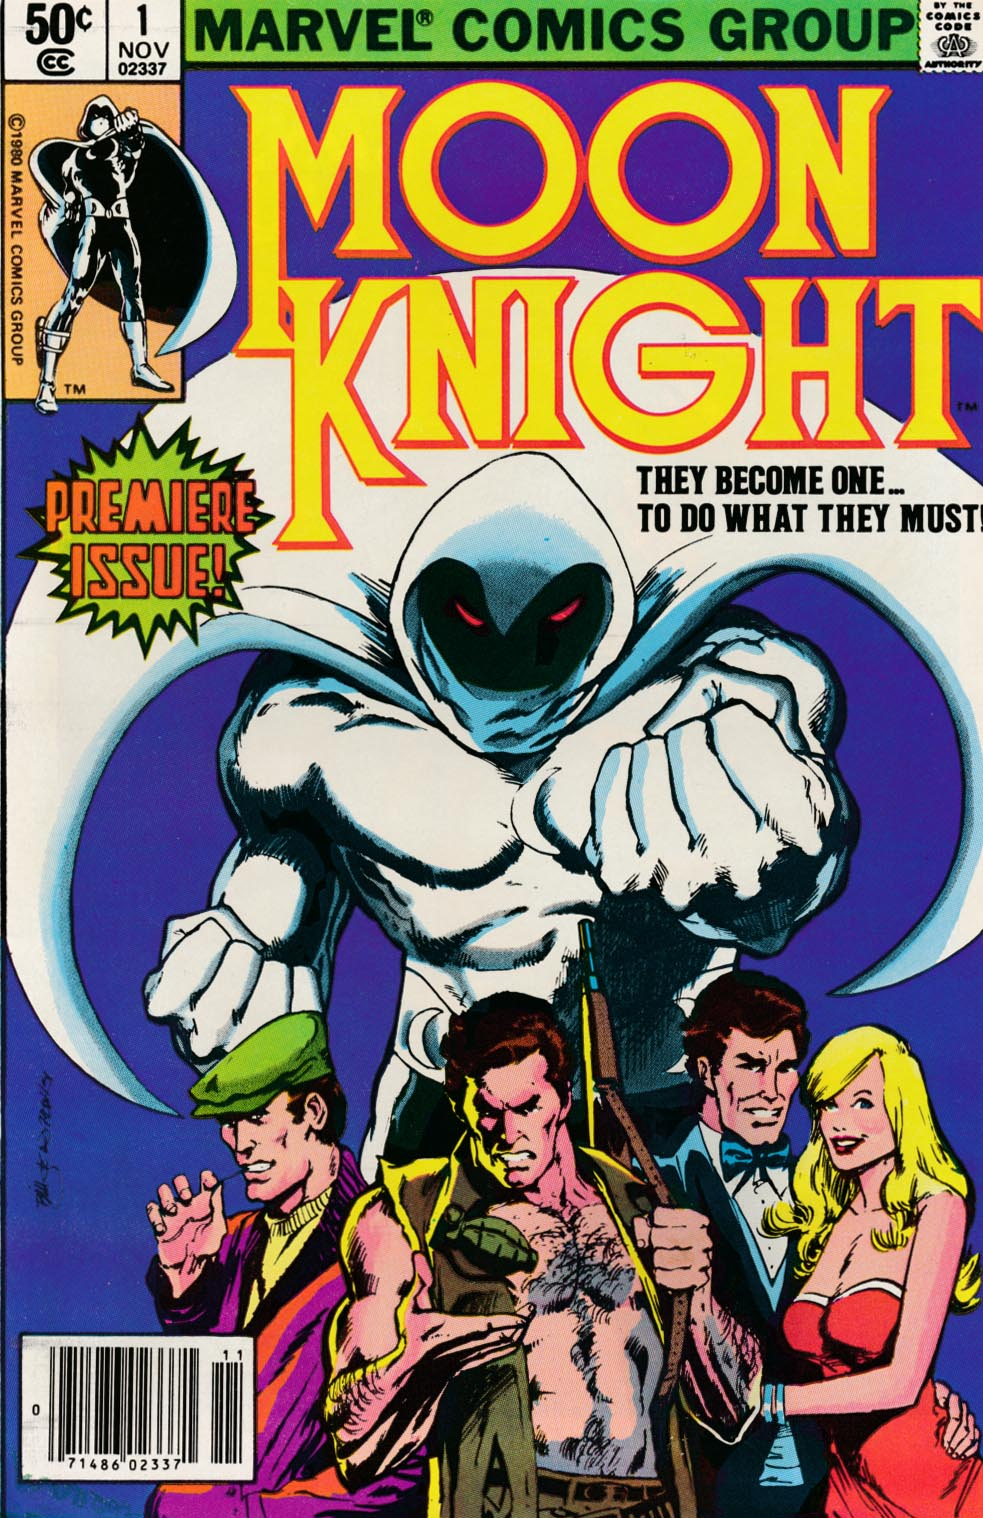 Moon Knight vol 1 - 1 (Newstand) -NM